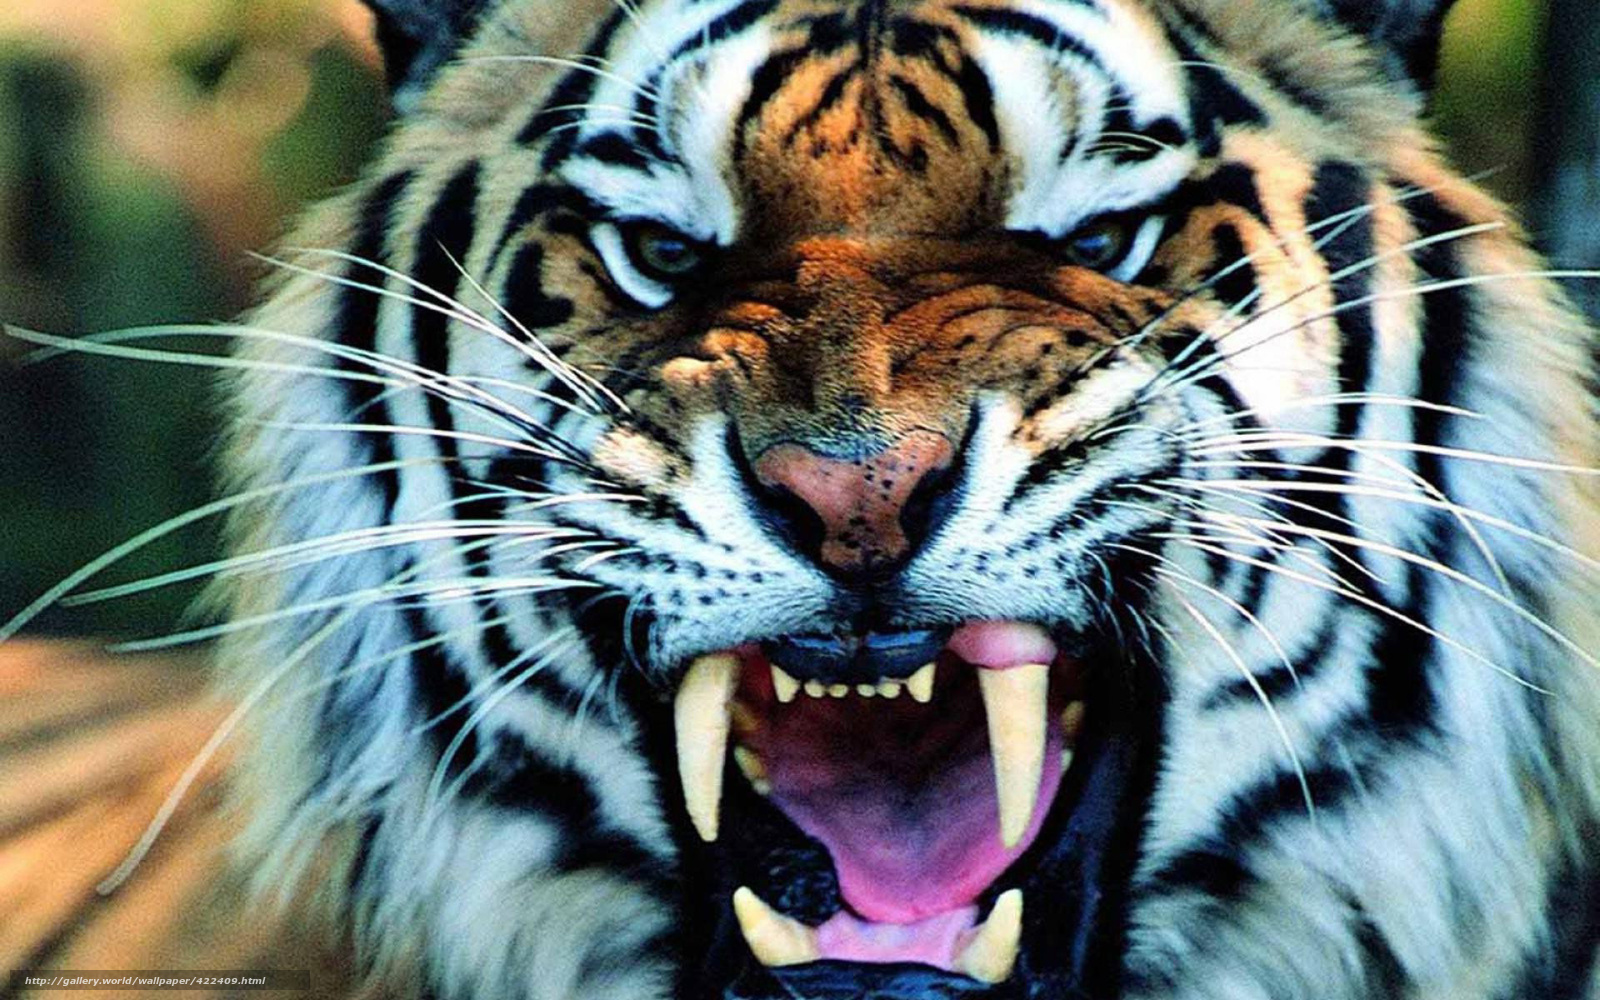 Search photos Category Animals gt Mammals gt Tigers